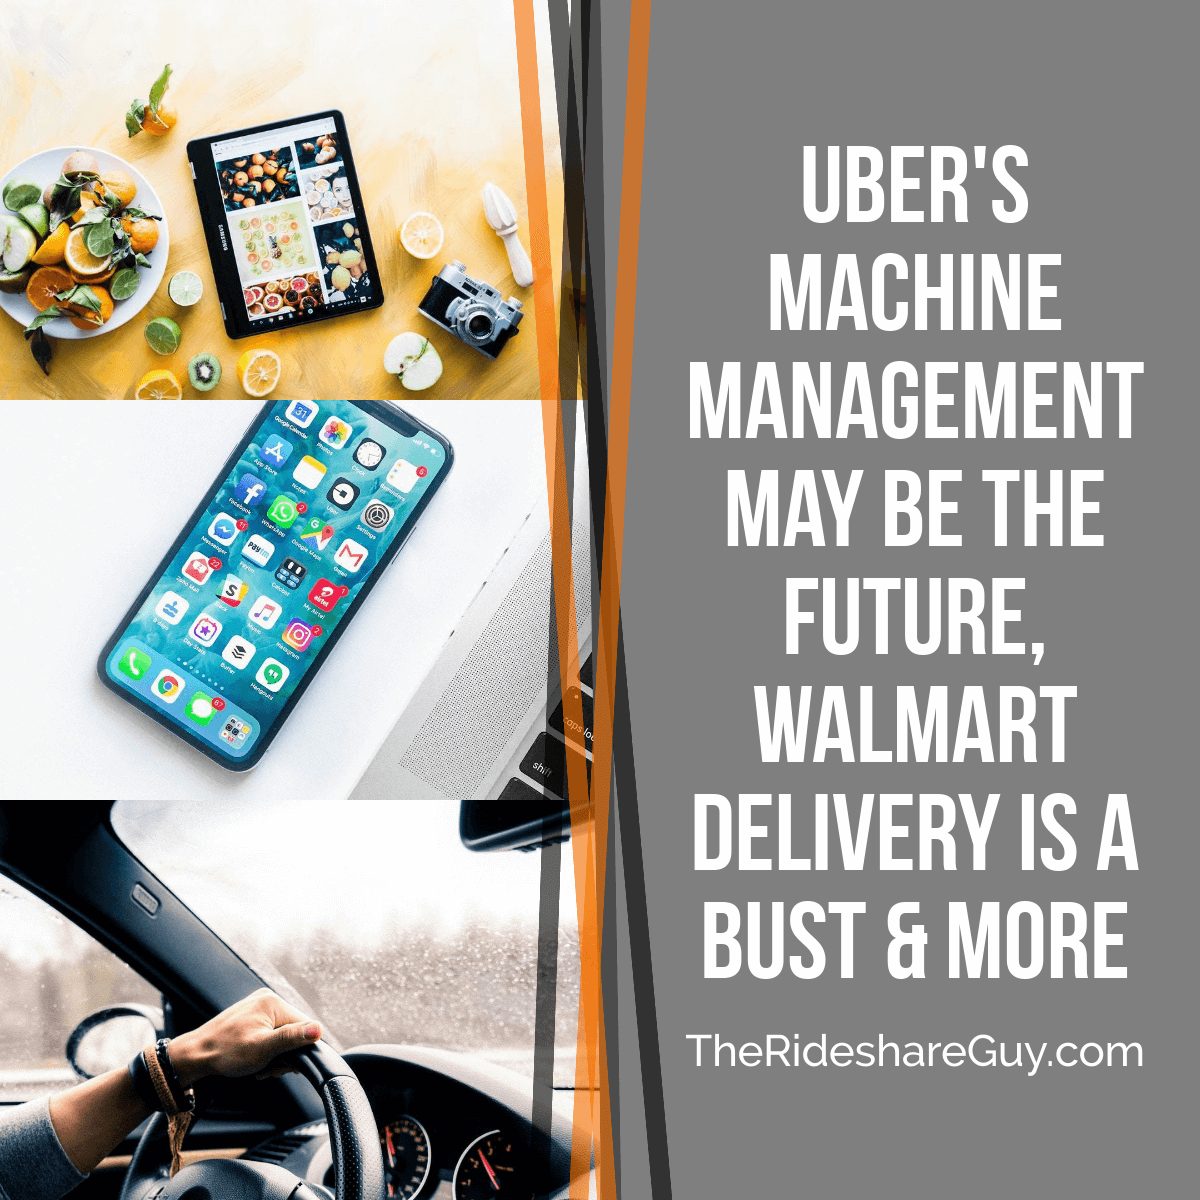 Uber's Machine Management May Be the Future & More